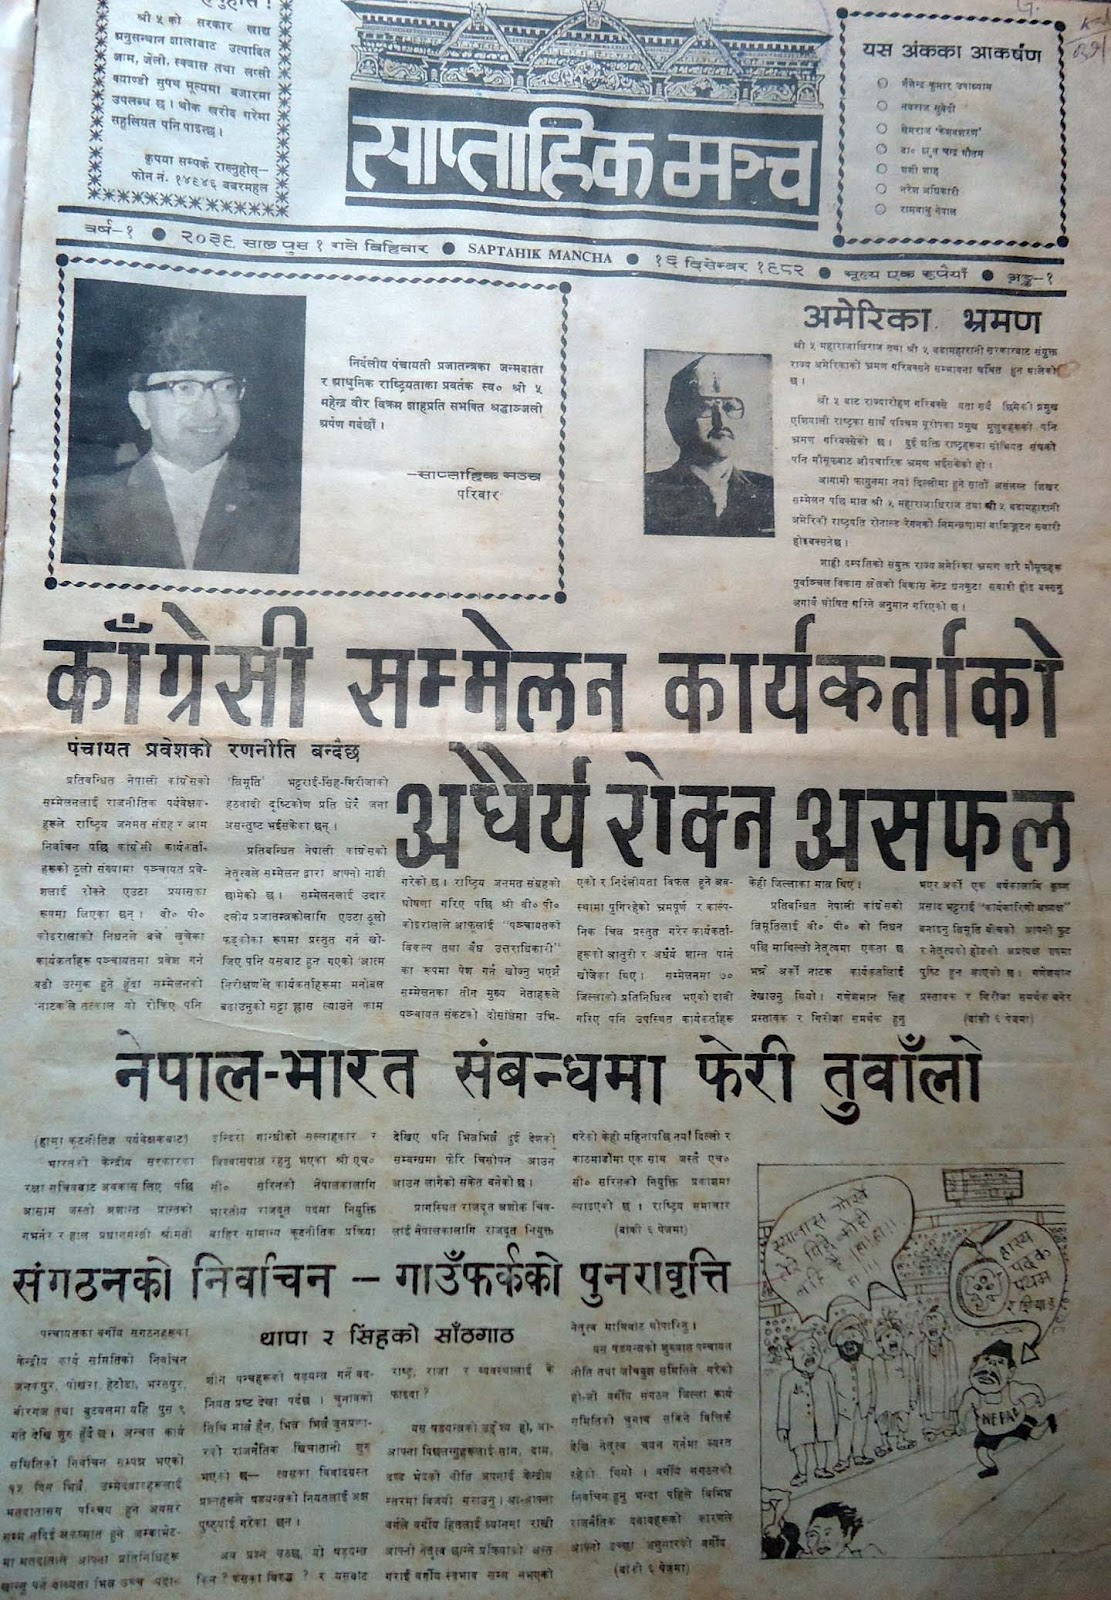 Hoarding Board of Gorkhapatra, Nepali Daily Newspaper in the 1970s